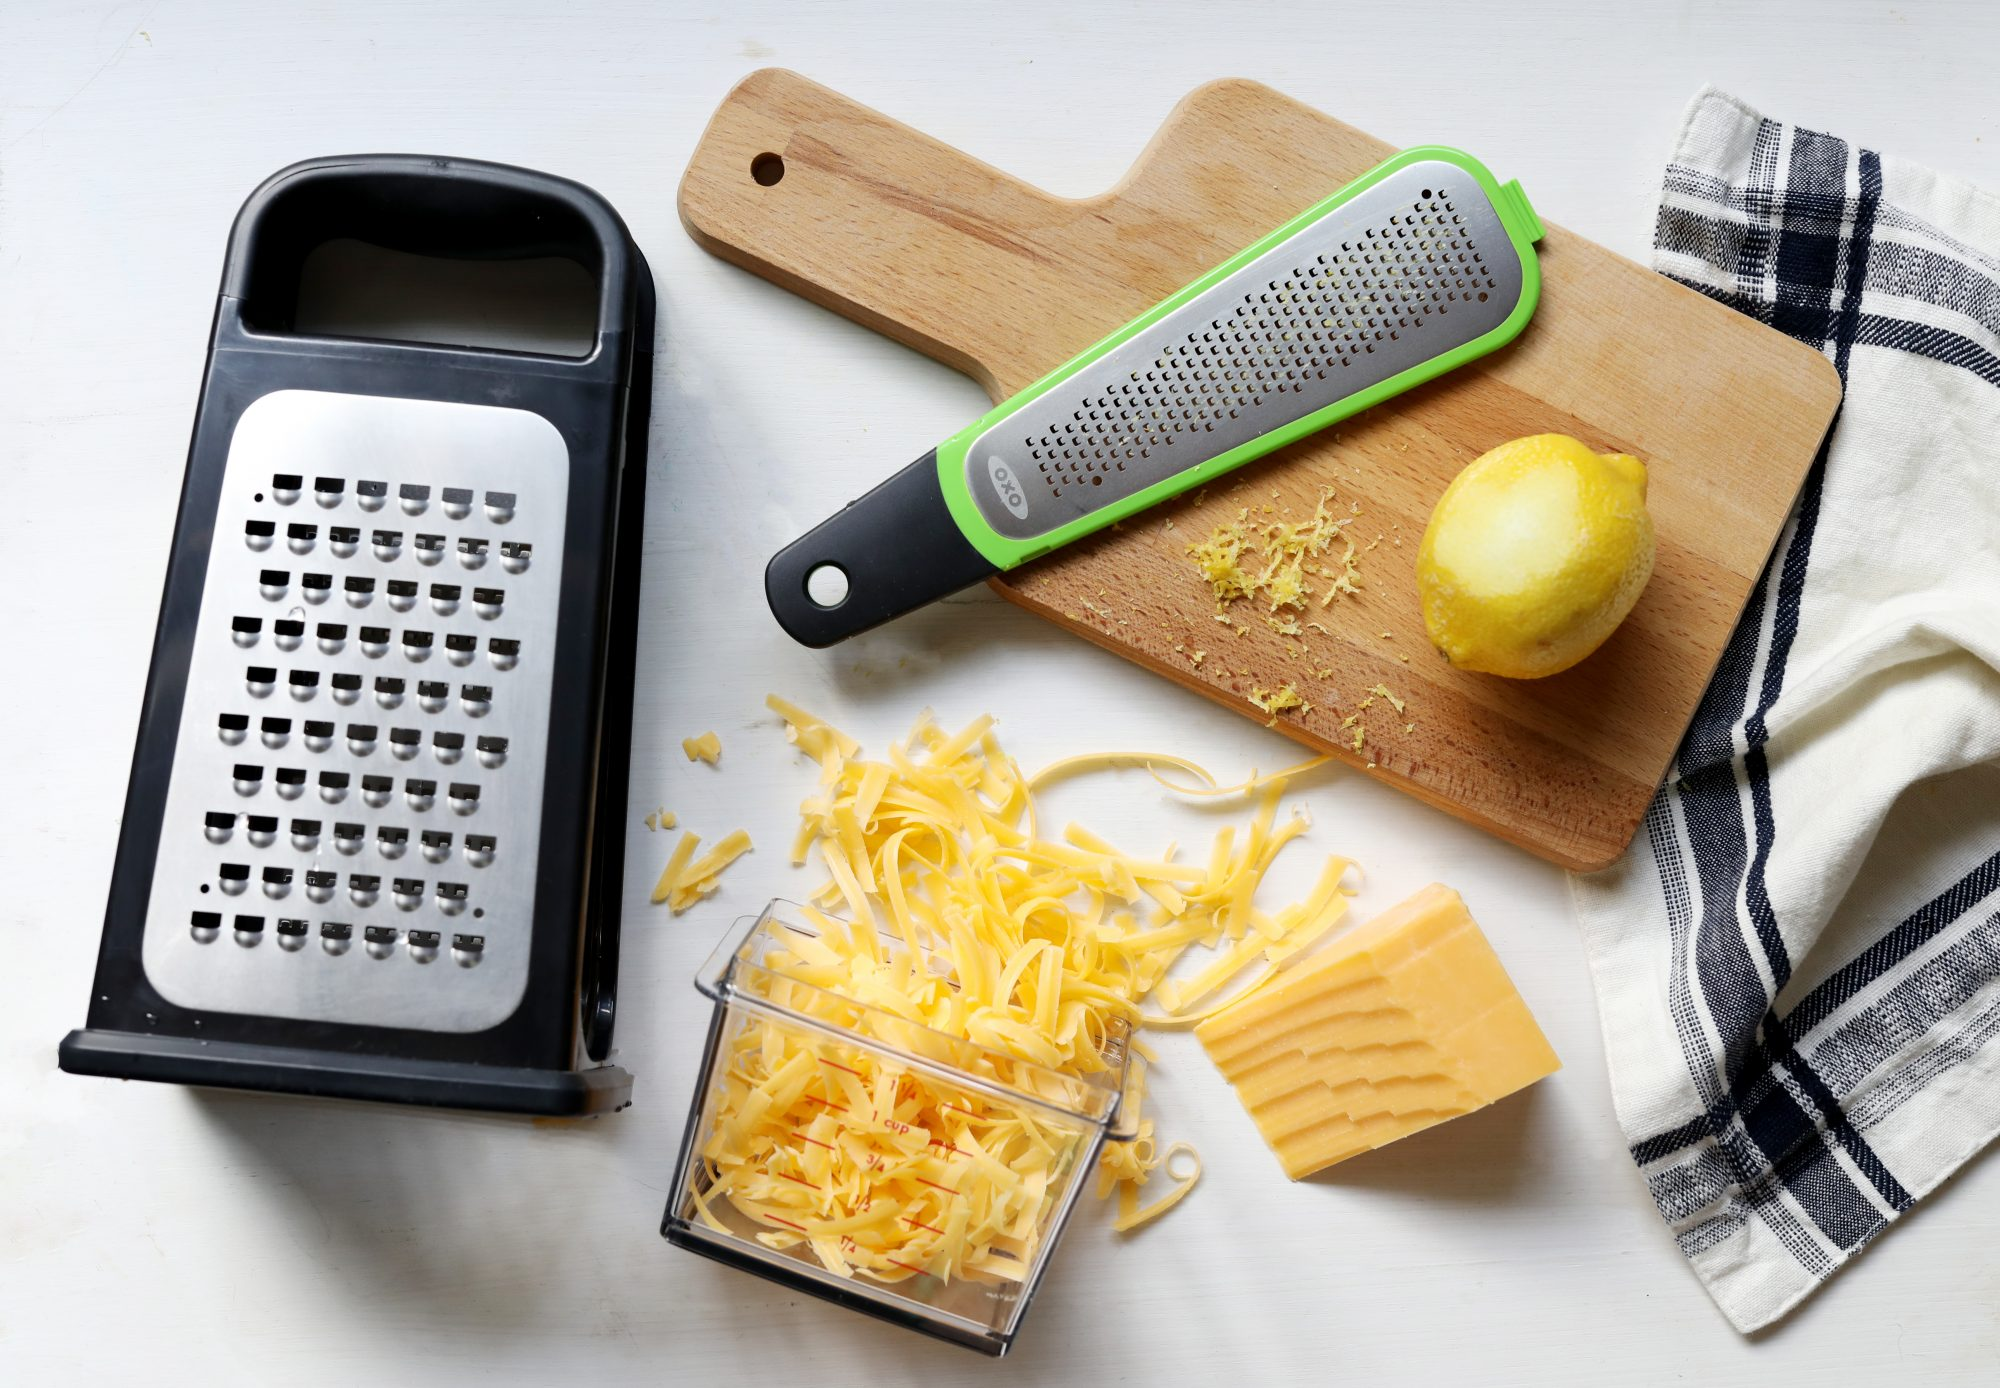 OXO Box Grater with grated cheddar and OXO grater with lemon zest on cutting board.